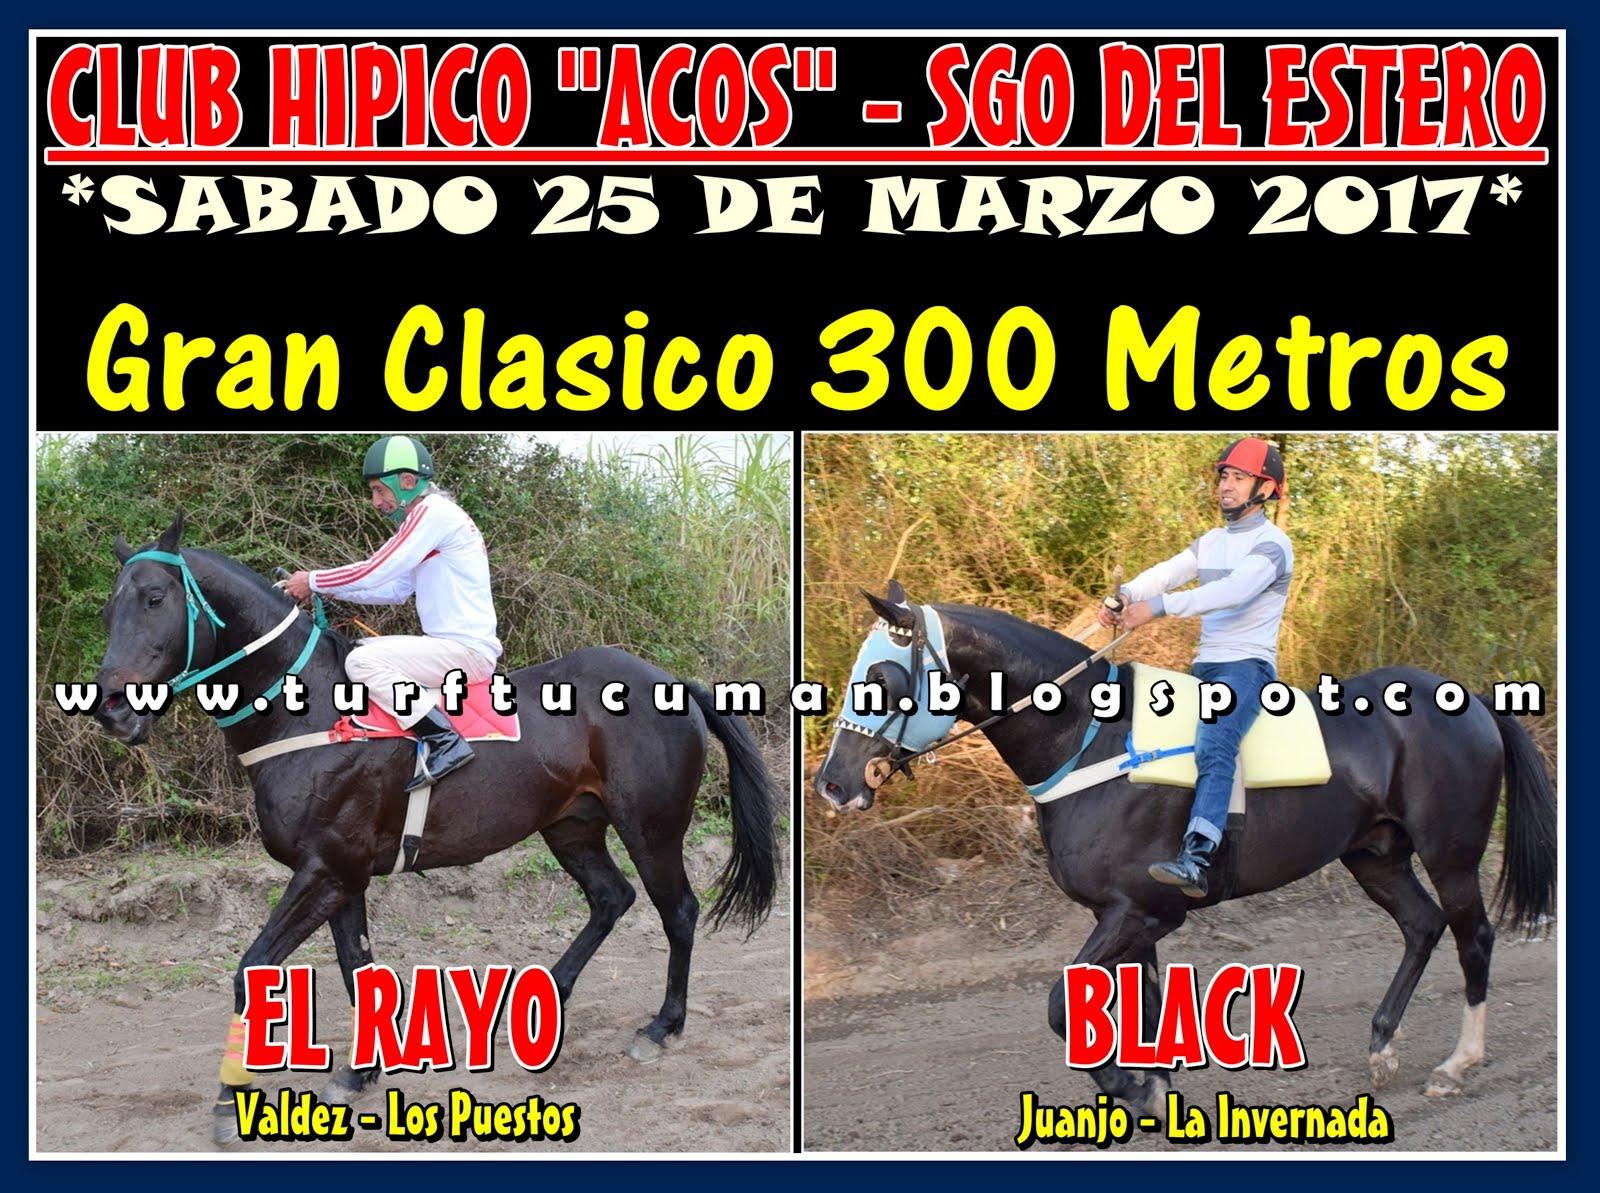 RAYO VS BLACK